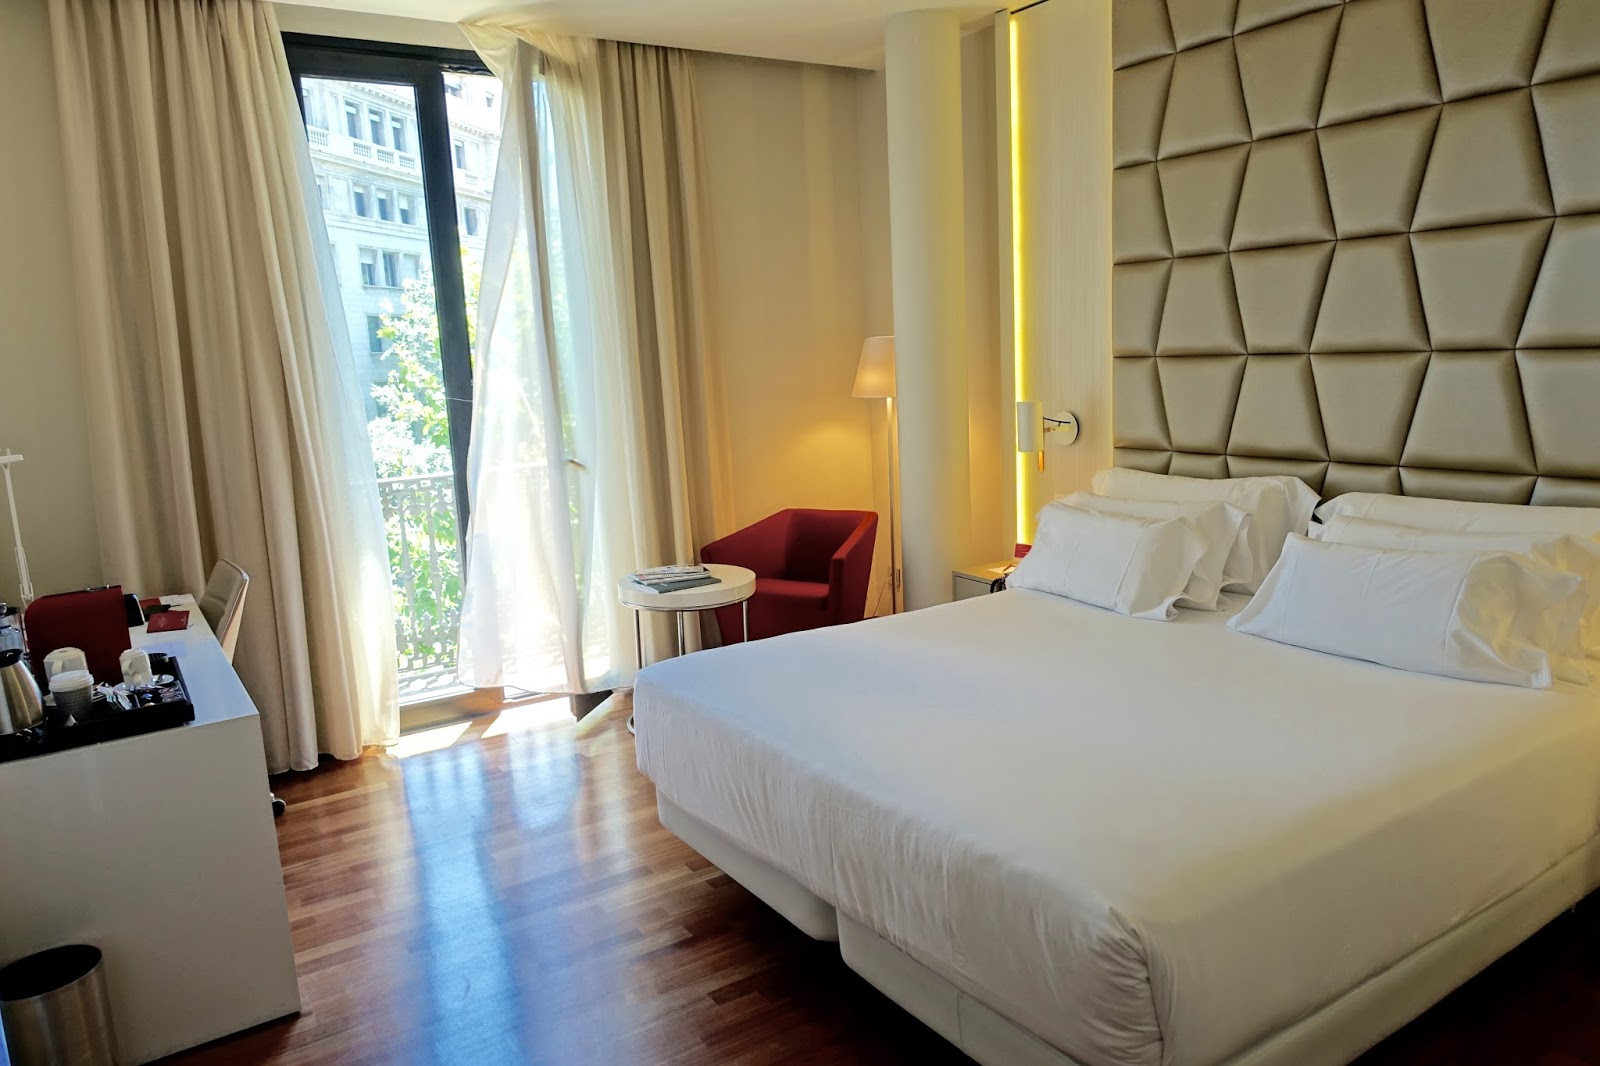 premium room with balcony overlooking barcelona streets